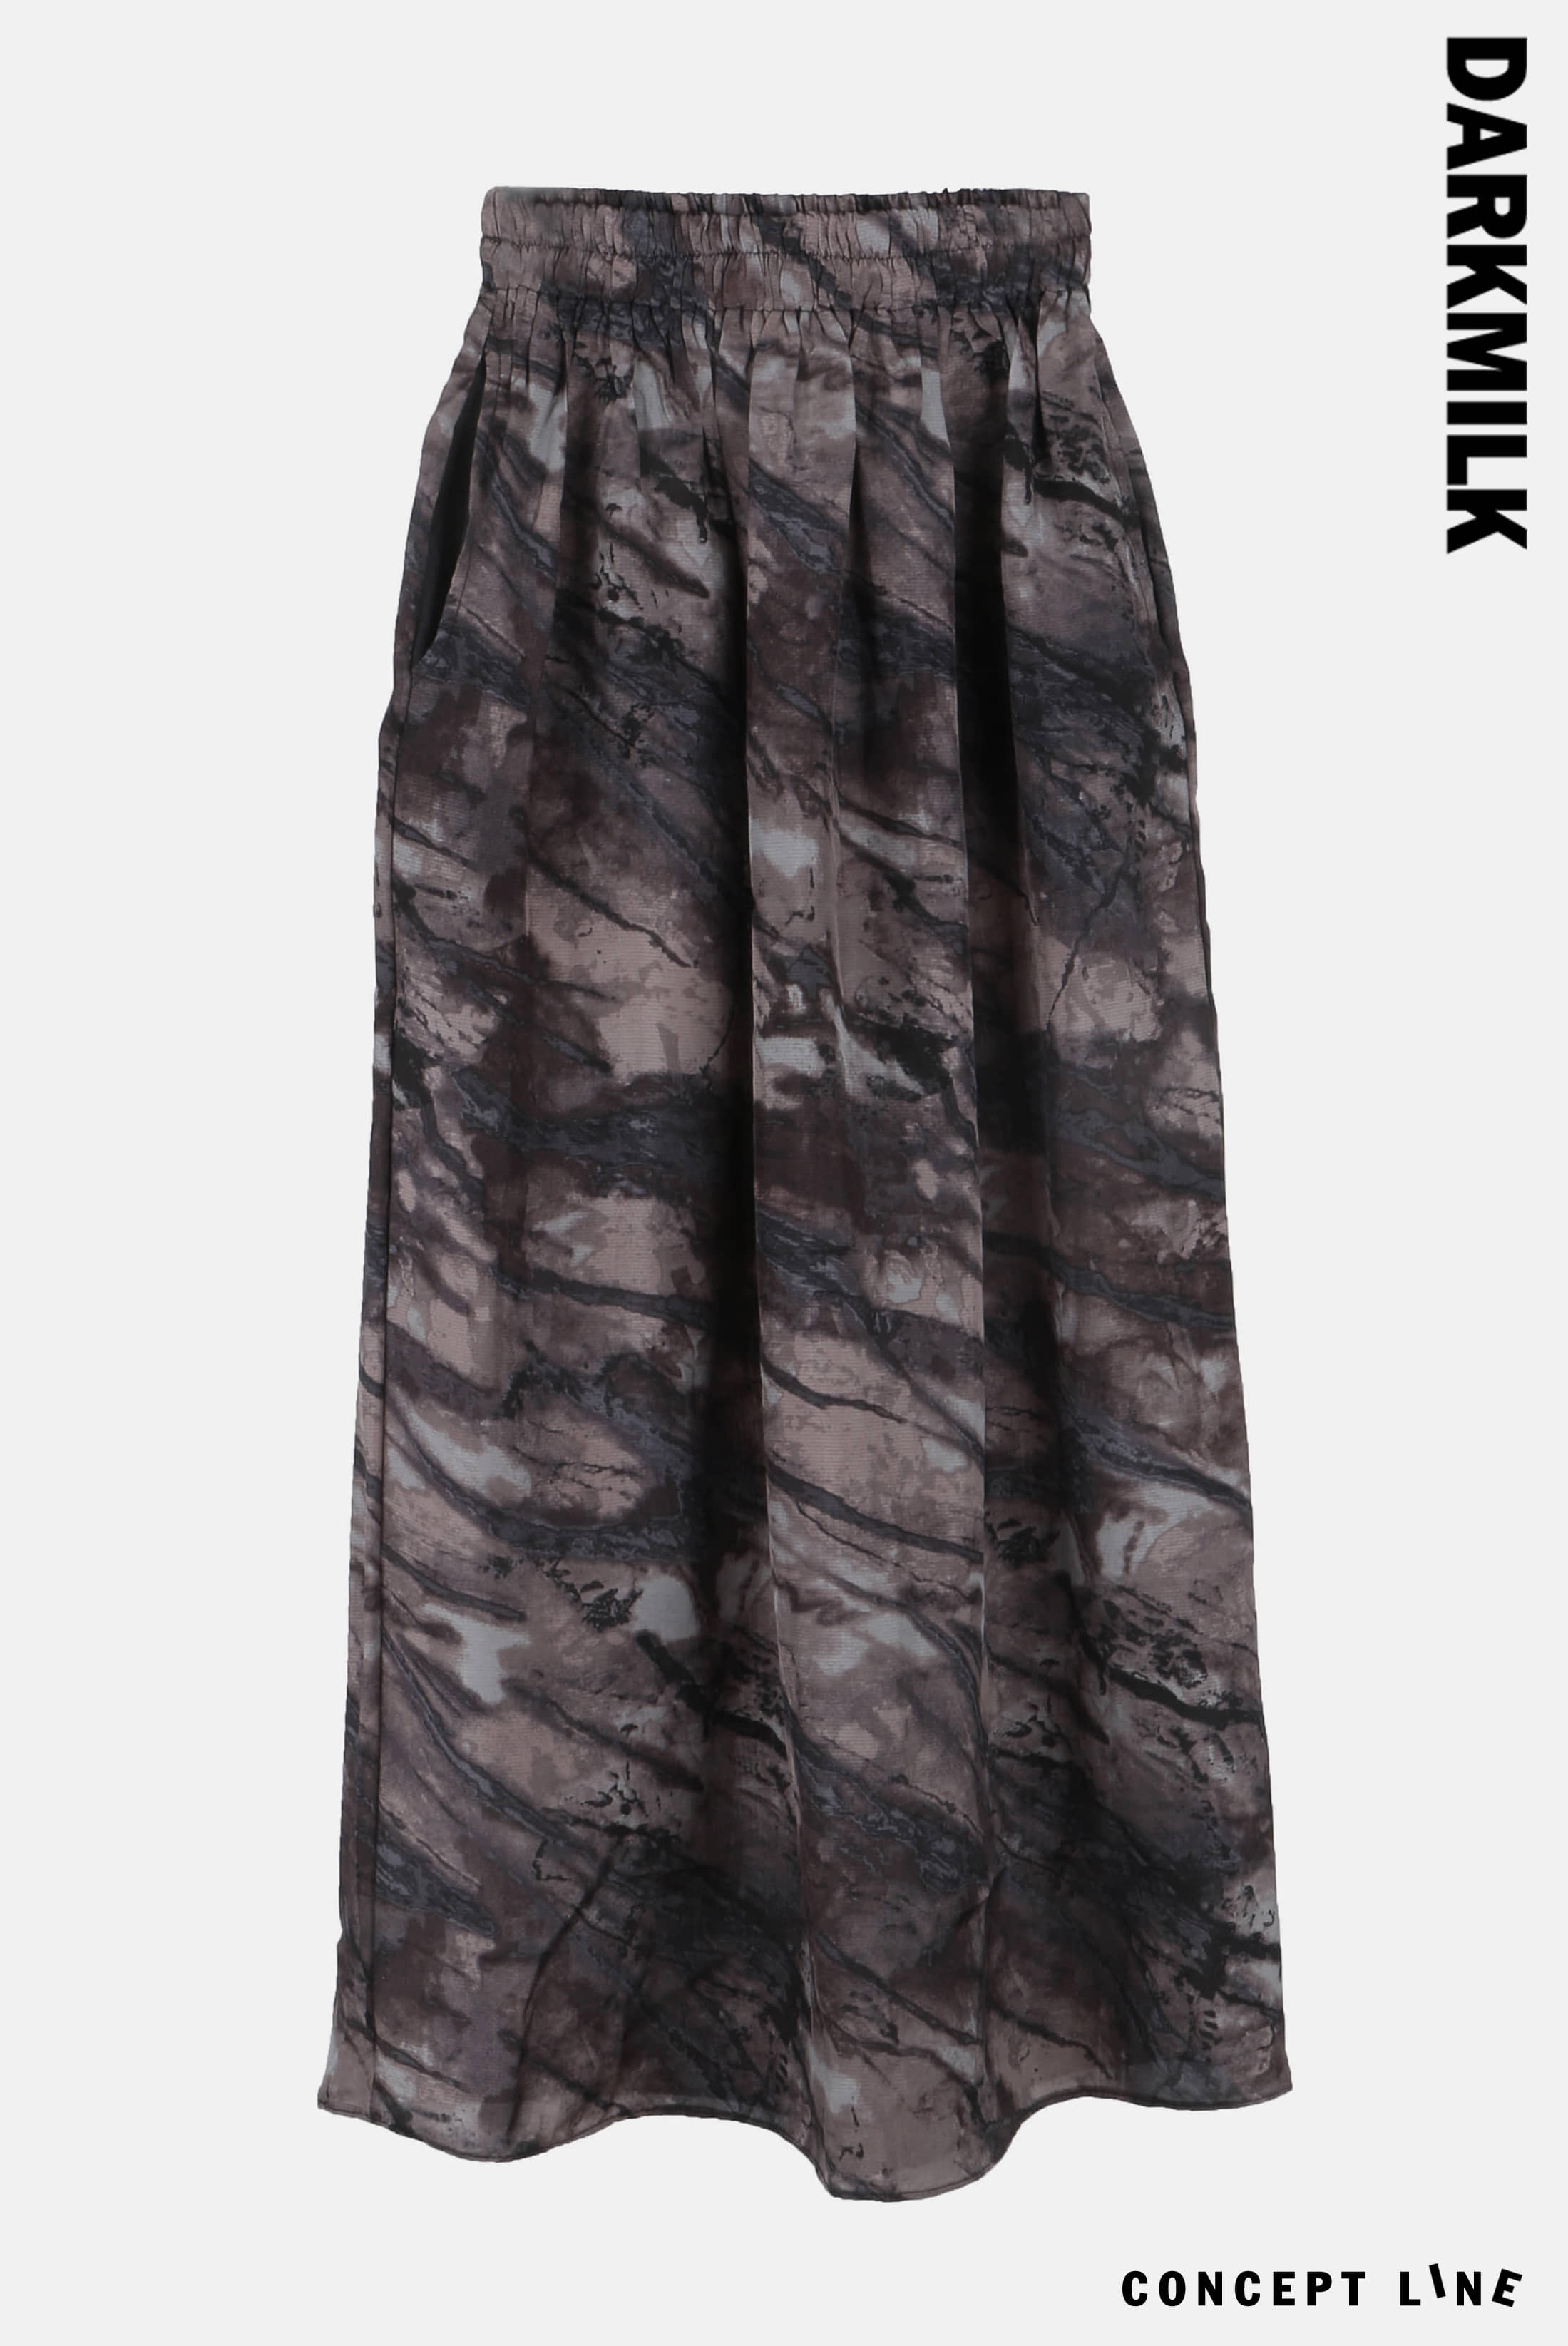 [Concept] Stone_Printed Long_Skirt  [SALE 20%]